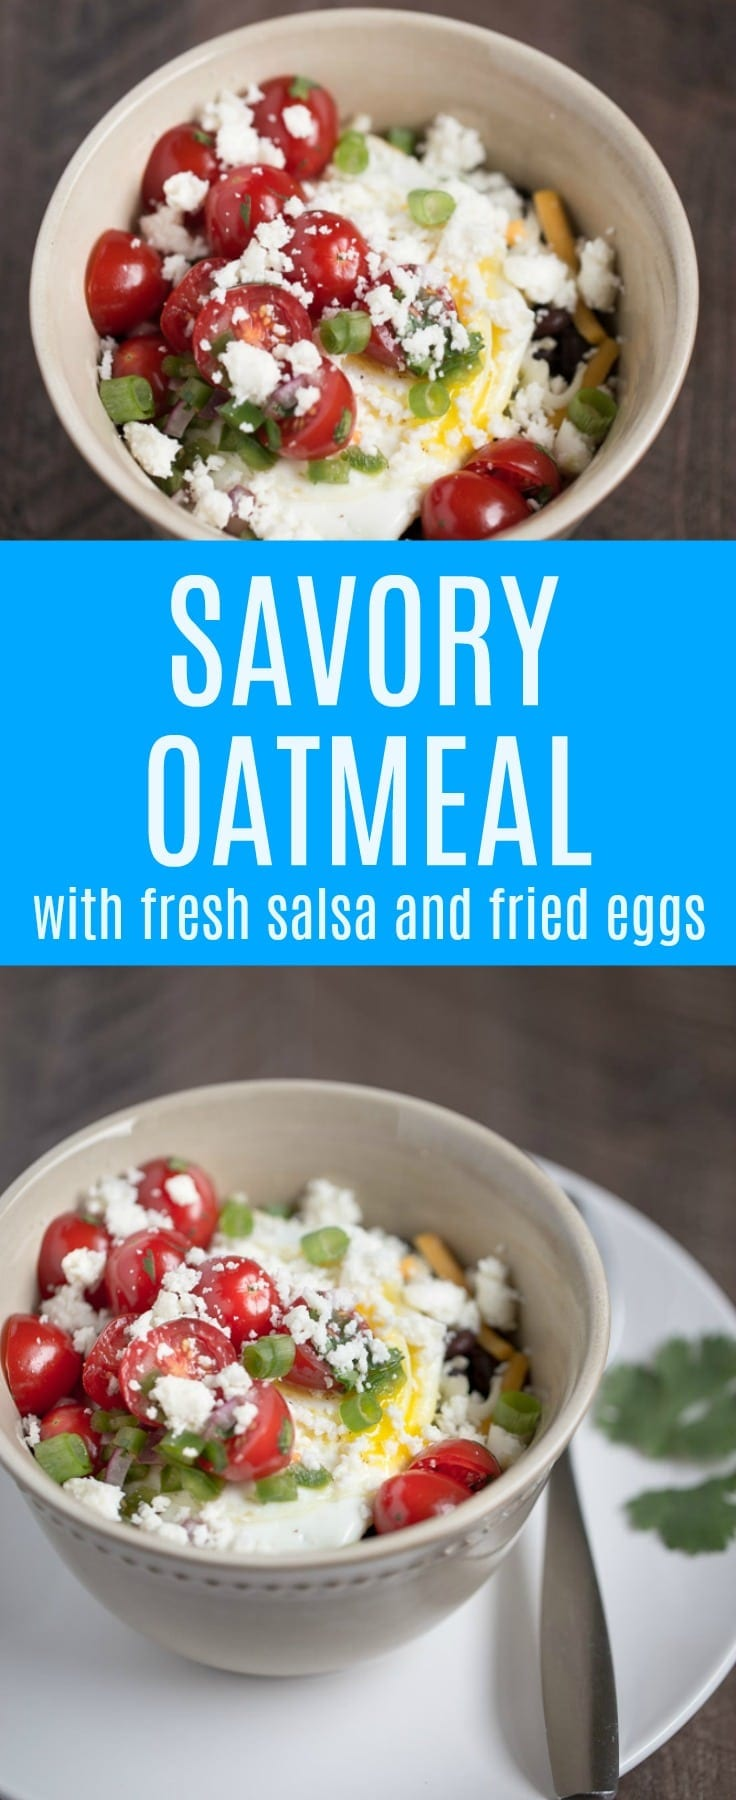 Savory Oatmeal with Fresh Salsa and Fried Eggs. This hearty oatmeal will fill you up and satisfy your belly!